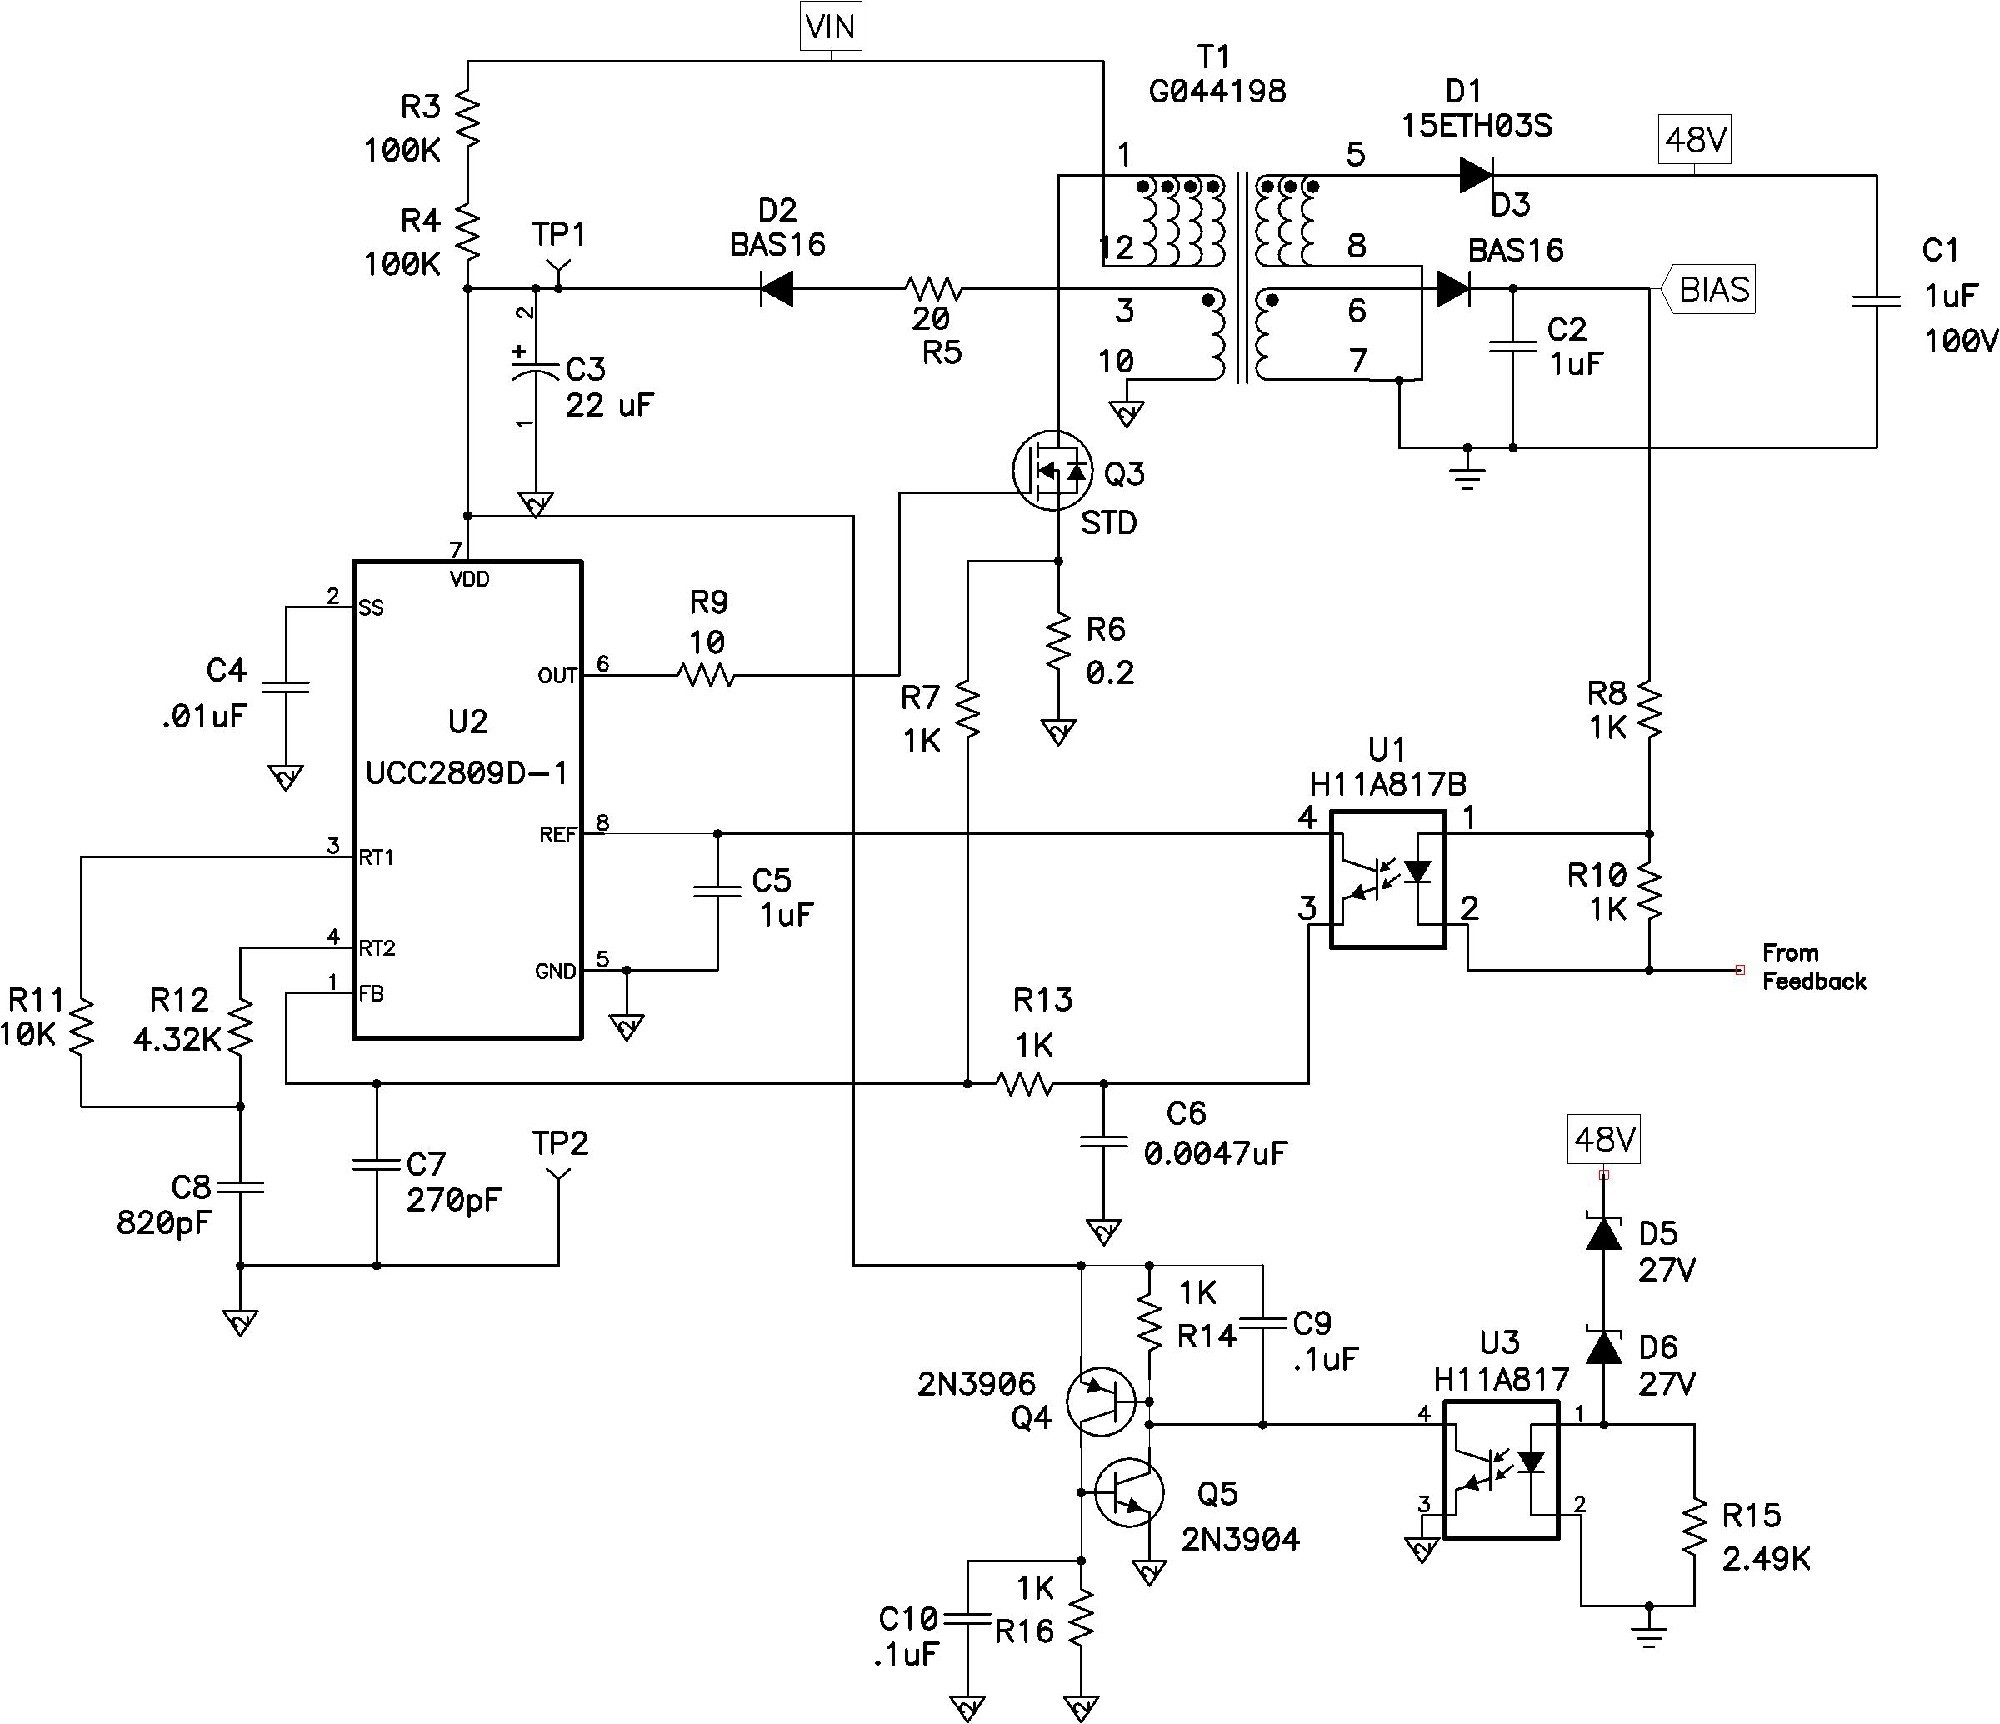 Tattoo Power Supply Wiring Diagram Free Download Ruud Urgg12e61ckr Gallery Sample Dc Circuit At